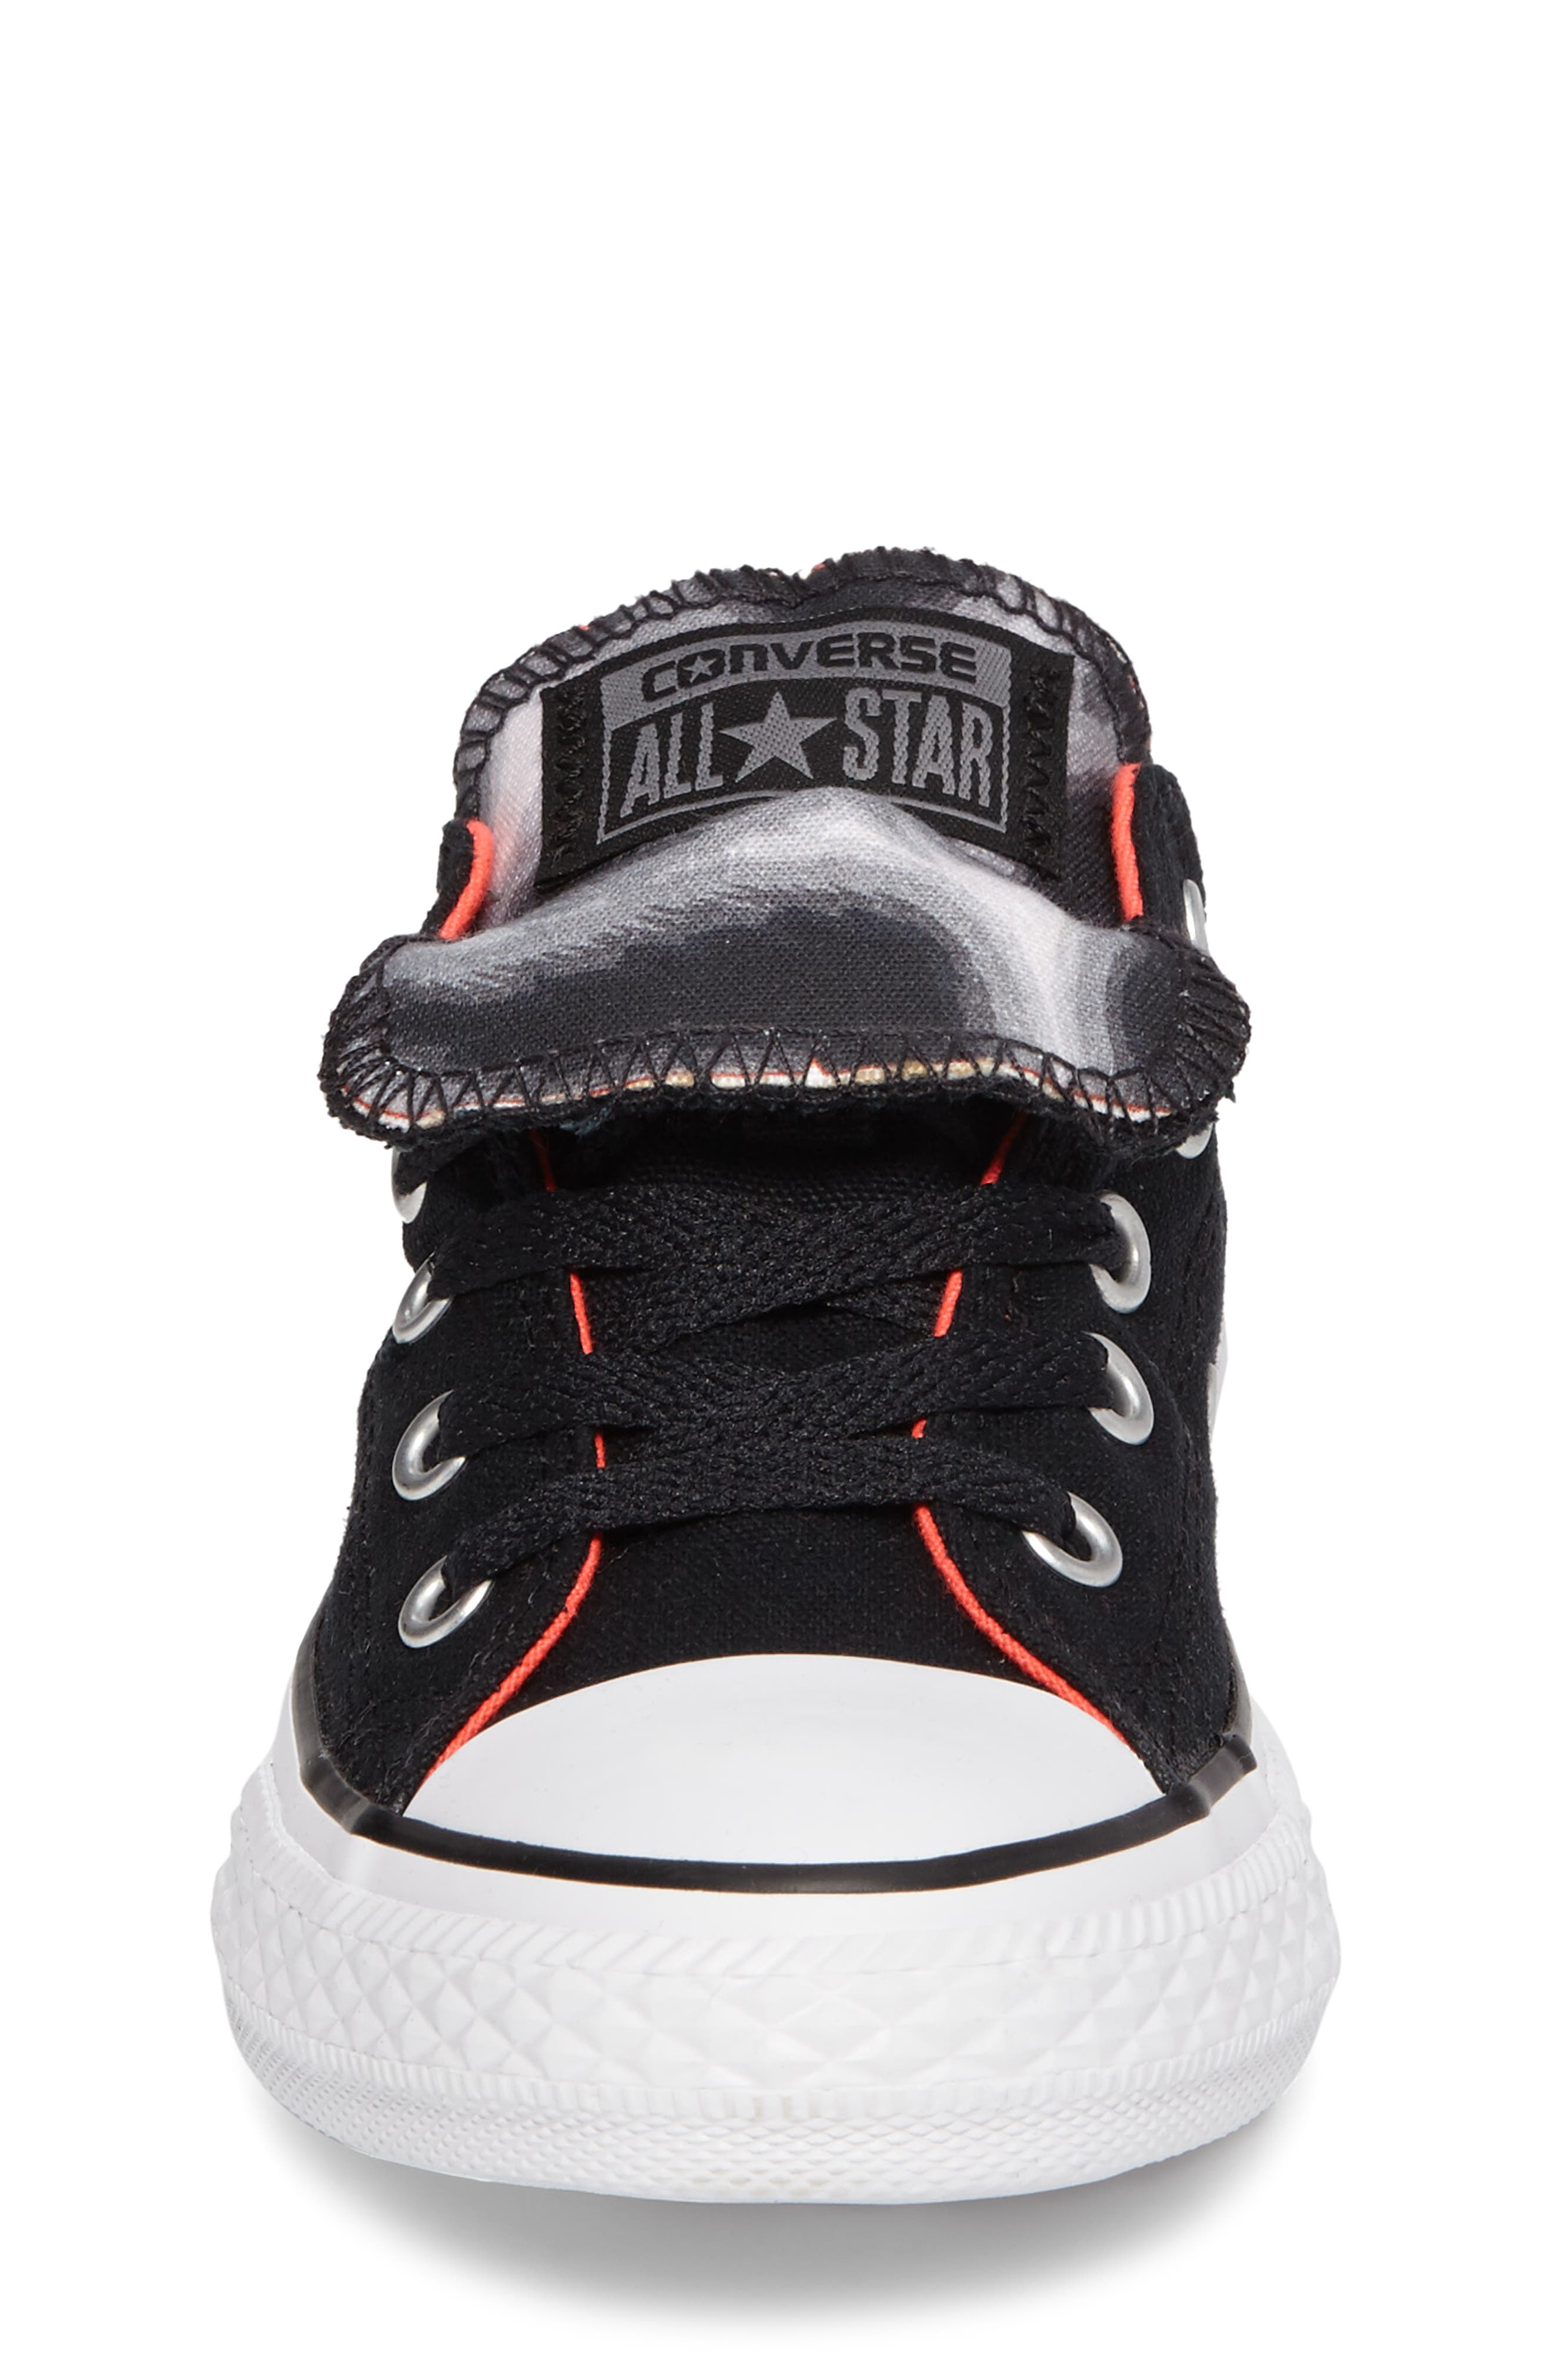 Alternate Image 4  - Converse All Star® Double Tongue Sneaker (Toddler, Little Kid, Big Kid)